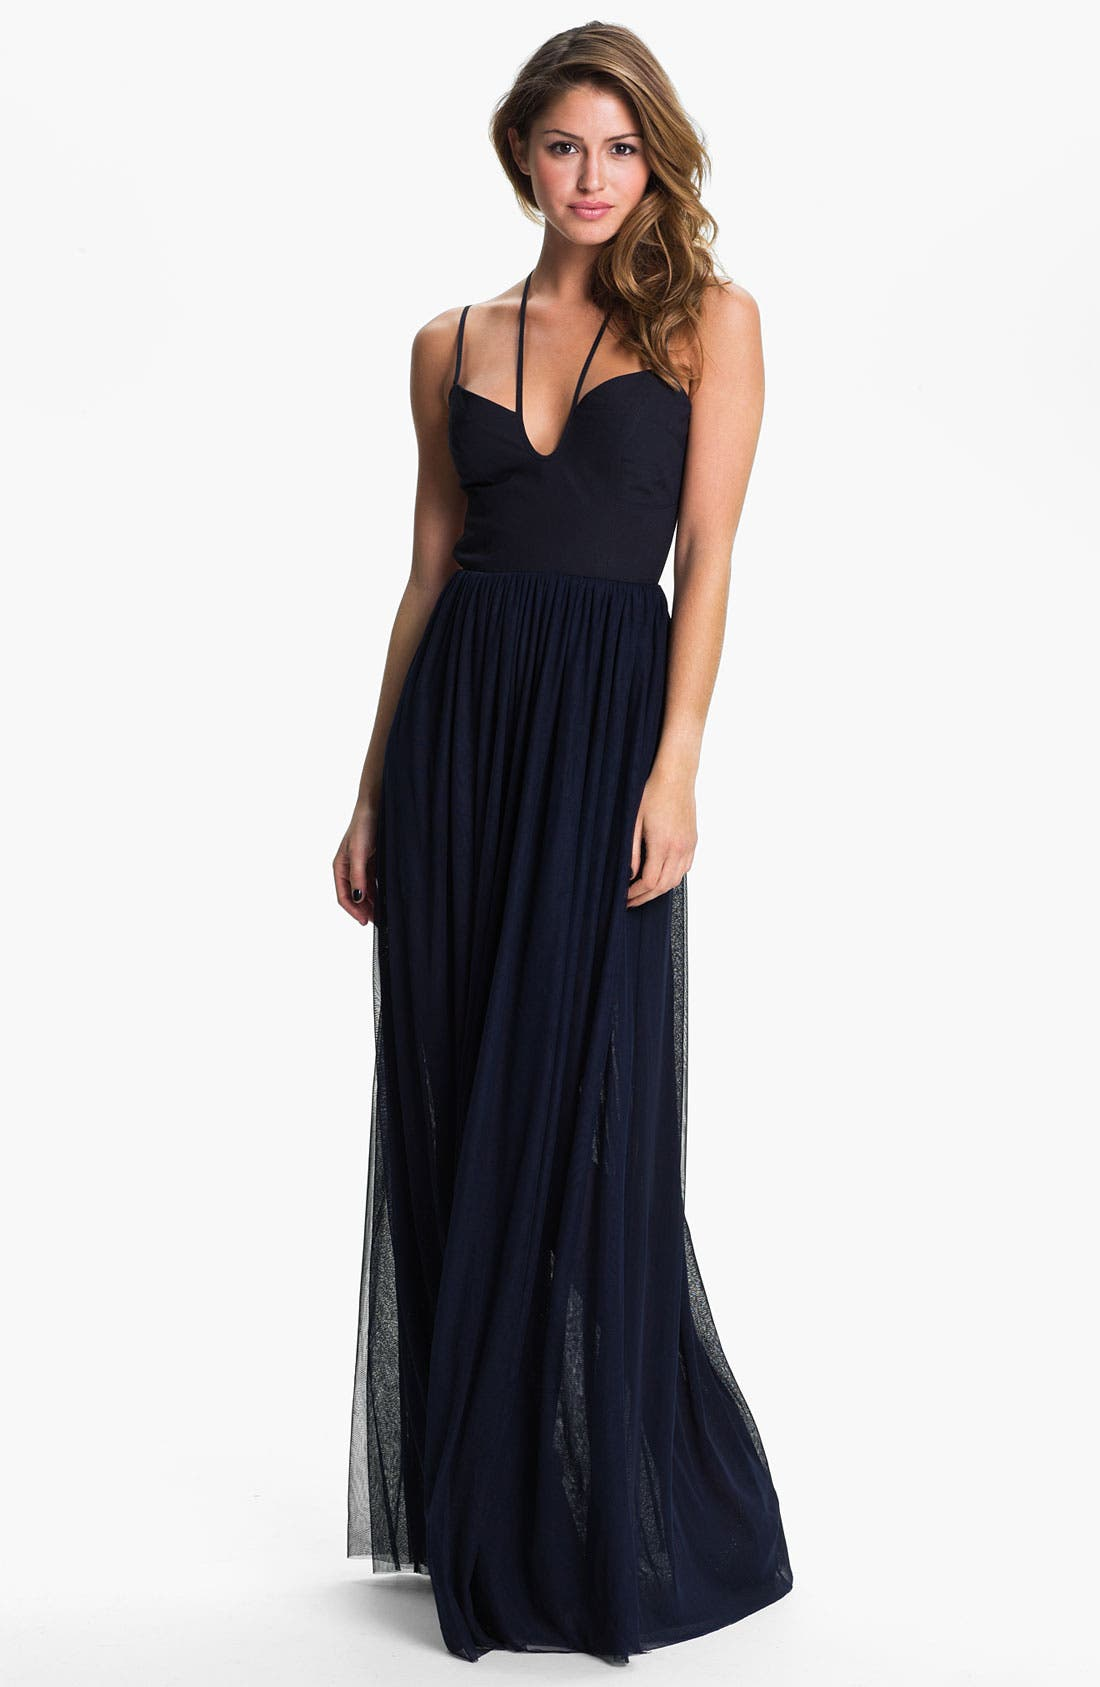 Main Image - Keepsake the Label 'Smoke & Mirrors' Back Cutout Mesh Maxi Dress